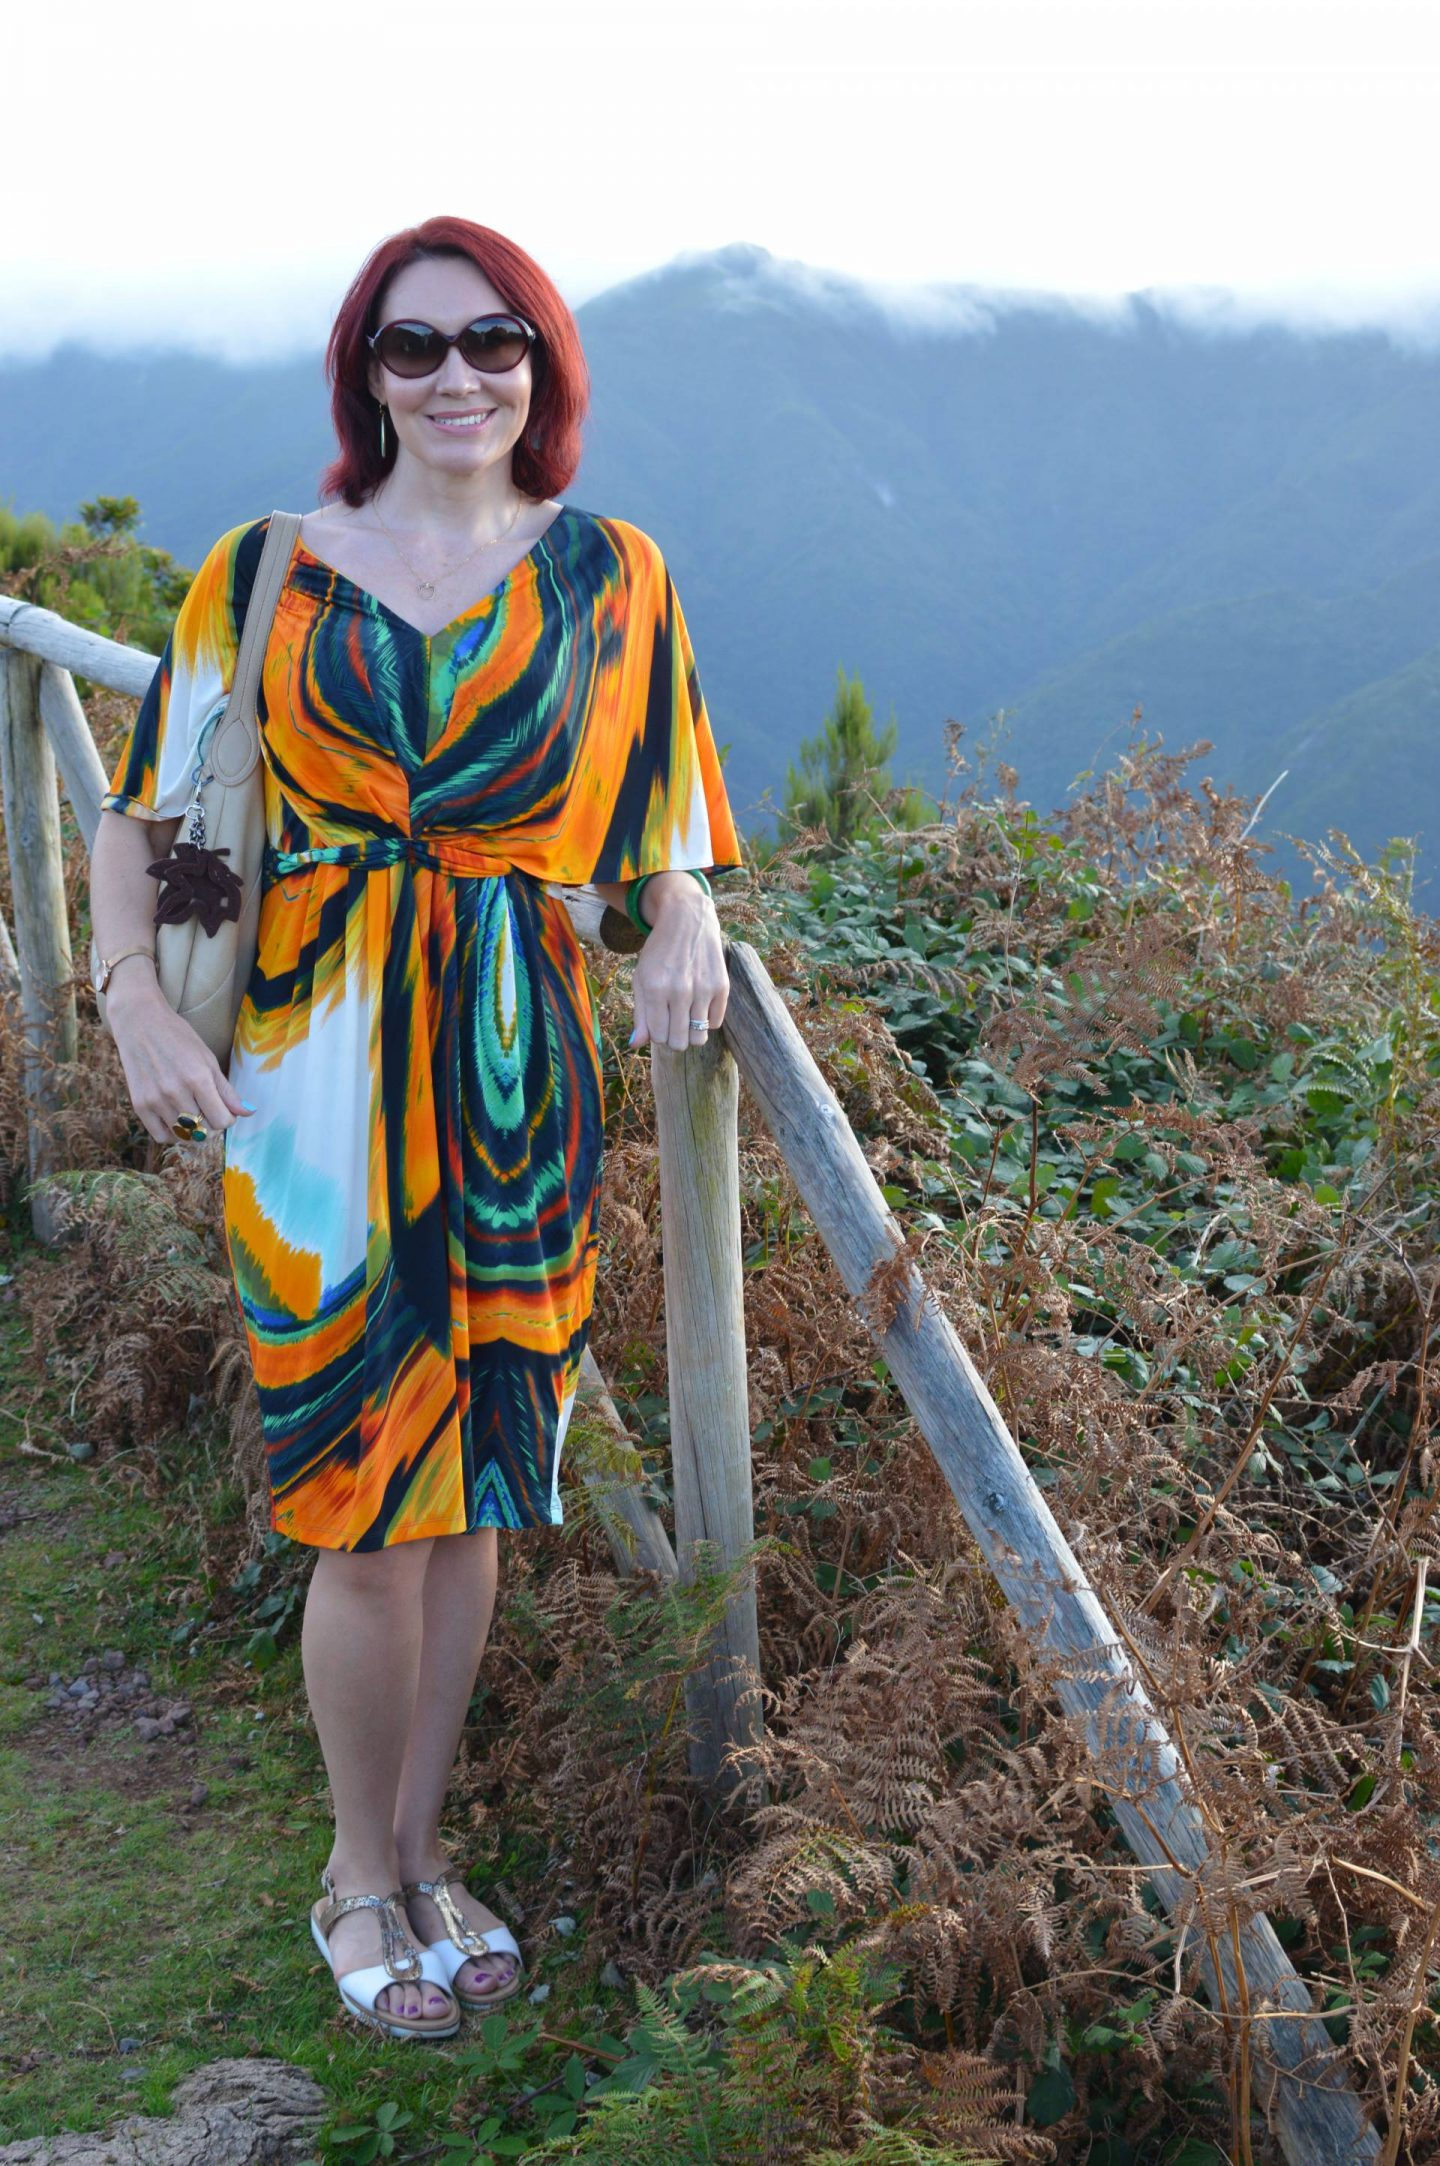 Tropical Print Batwing Dress, Madeira mountains in the clouds